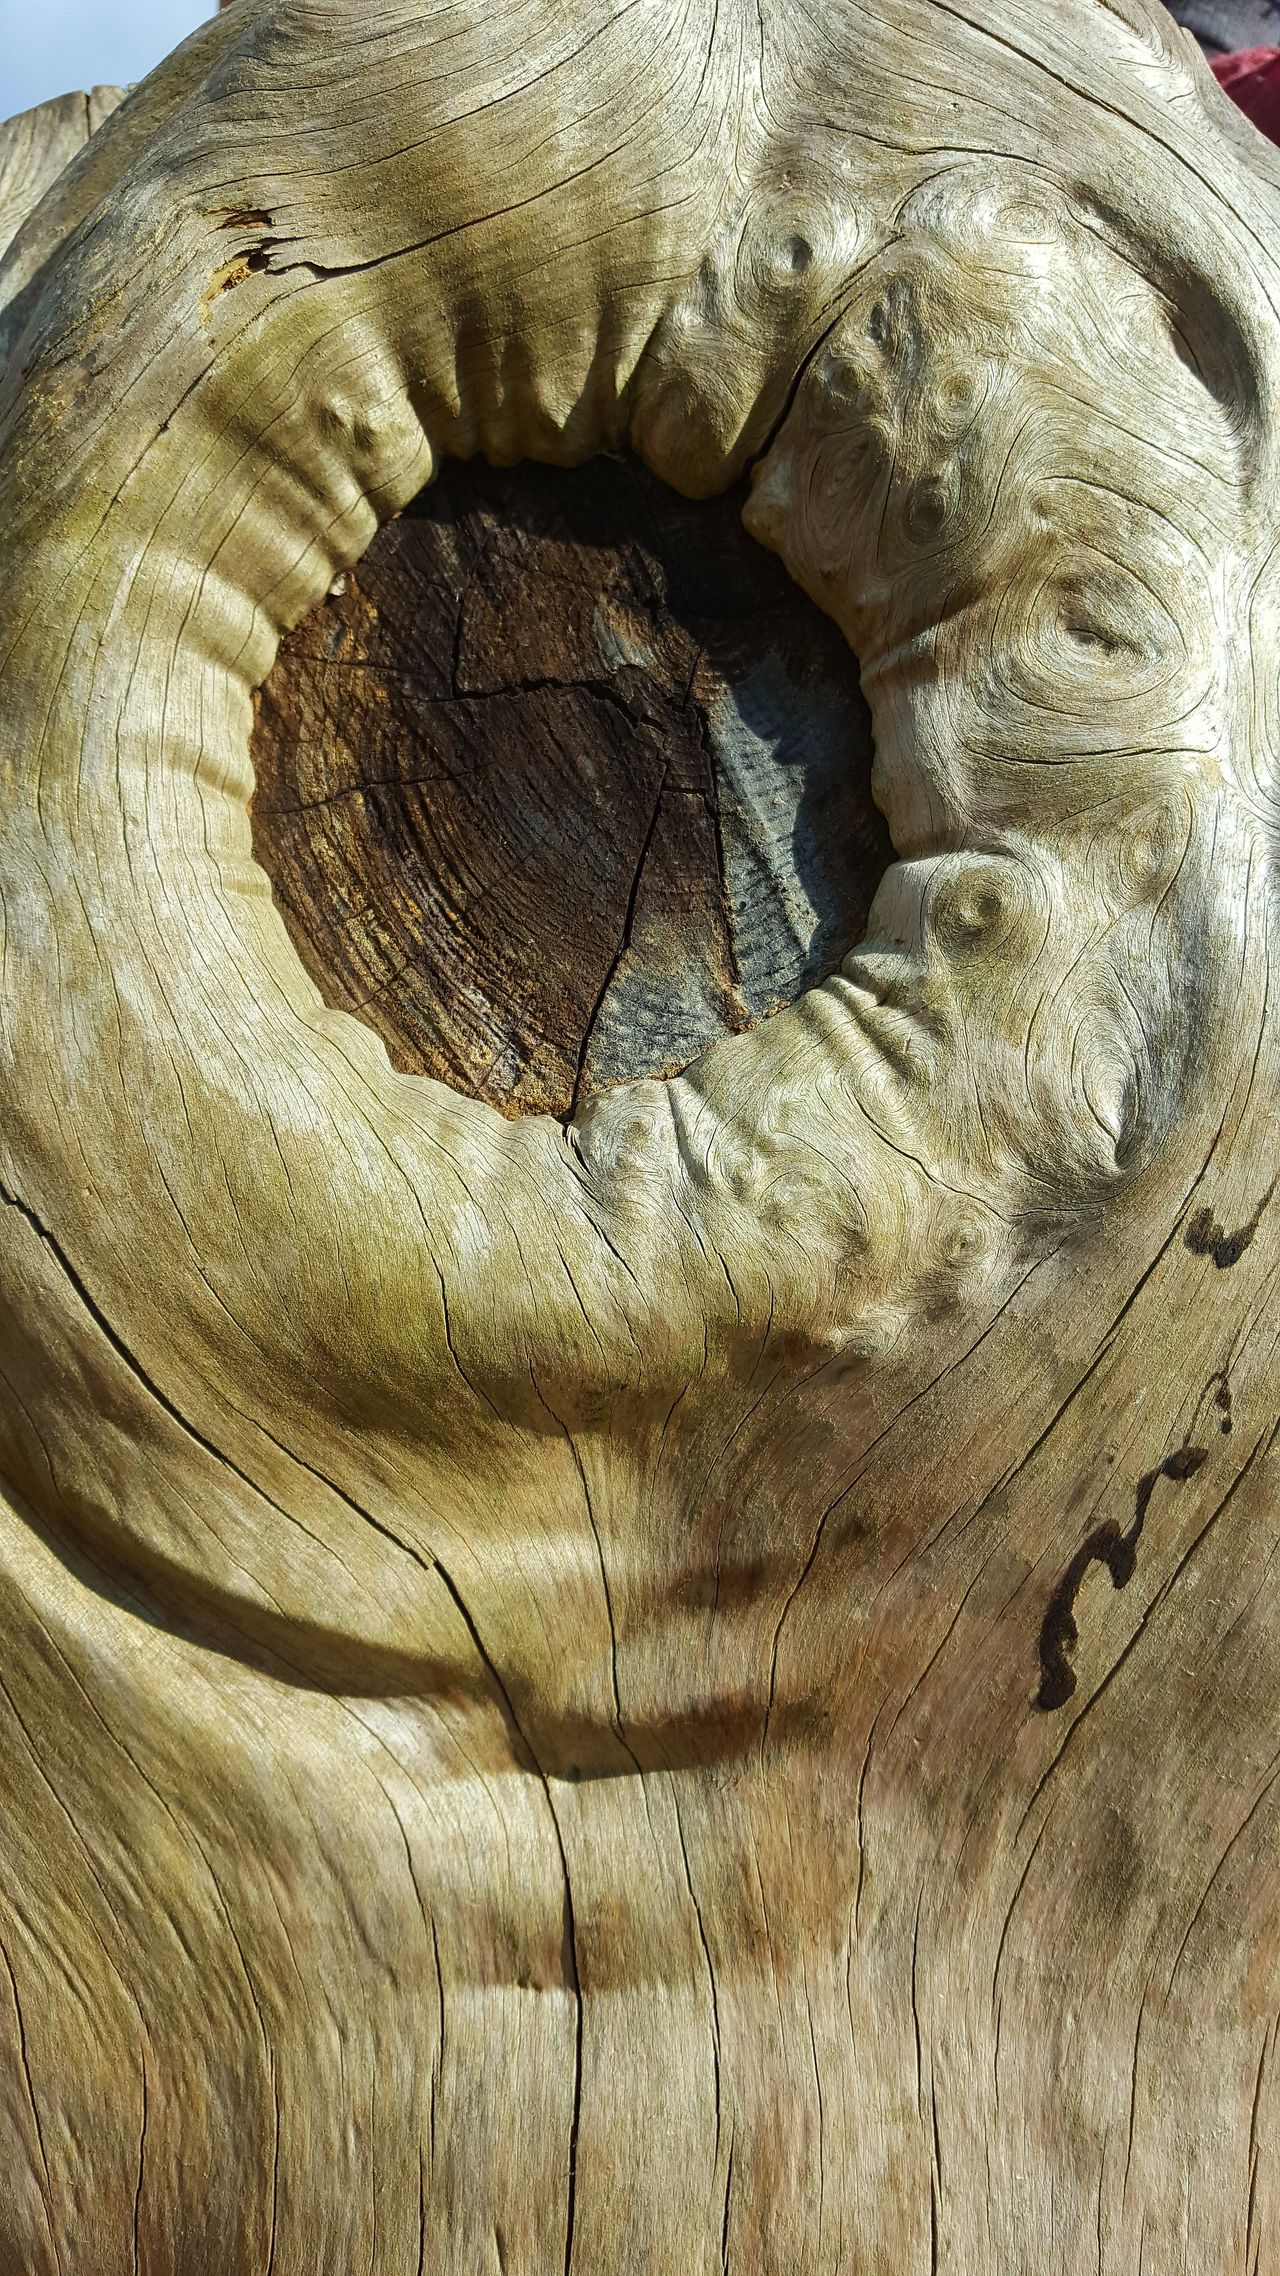 Wooden porthole. Textured  Backgrounds Abstract No People Nature Surreal Tree Bark Texture Tree Trunk Smooth Bark Park Life Sunlight Outdoor Photography EyeEm Gallery Ayeshea Bah Fresh On Eyeem  No Filter Textured  Bark Form Close-up Full Frame Tree Hole Shapes In Nature